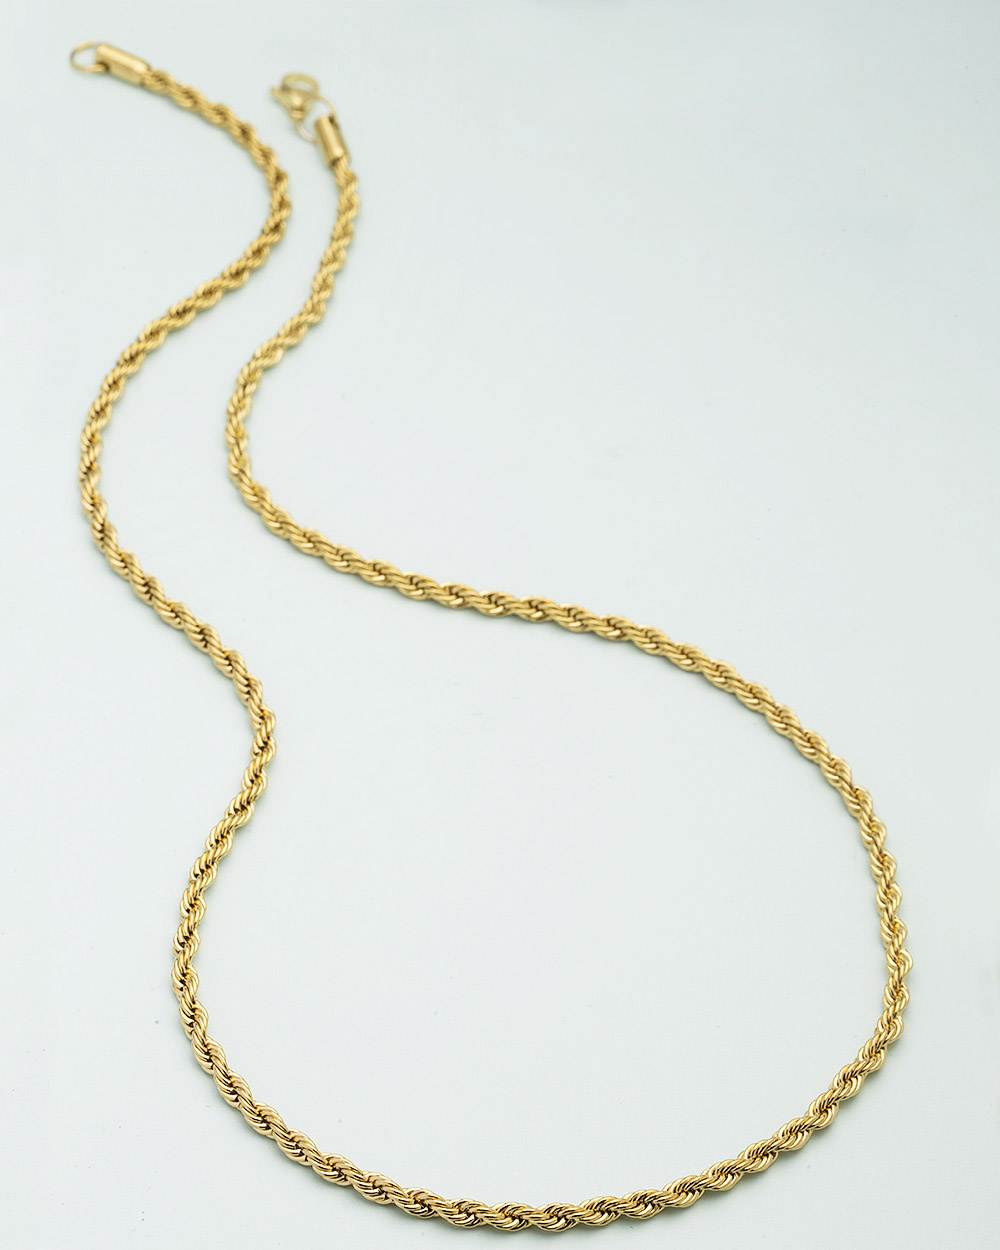 Buy Men\'s Chain In Curly Design In Yellow Gold Online India | Voylla